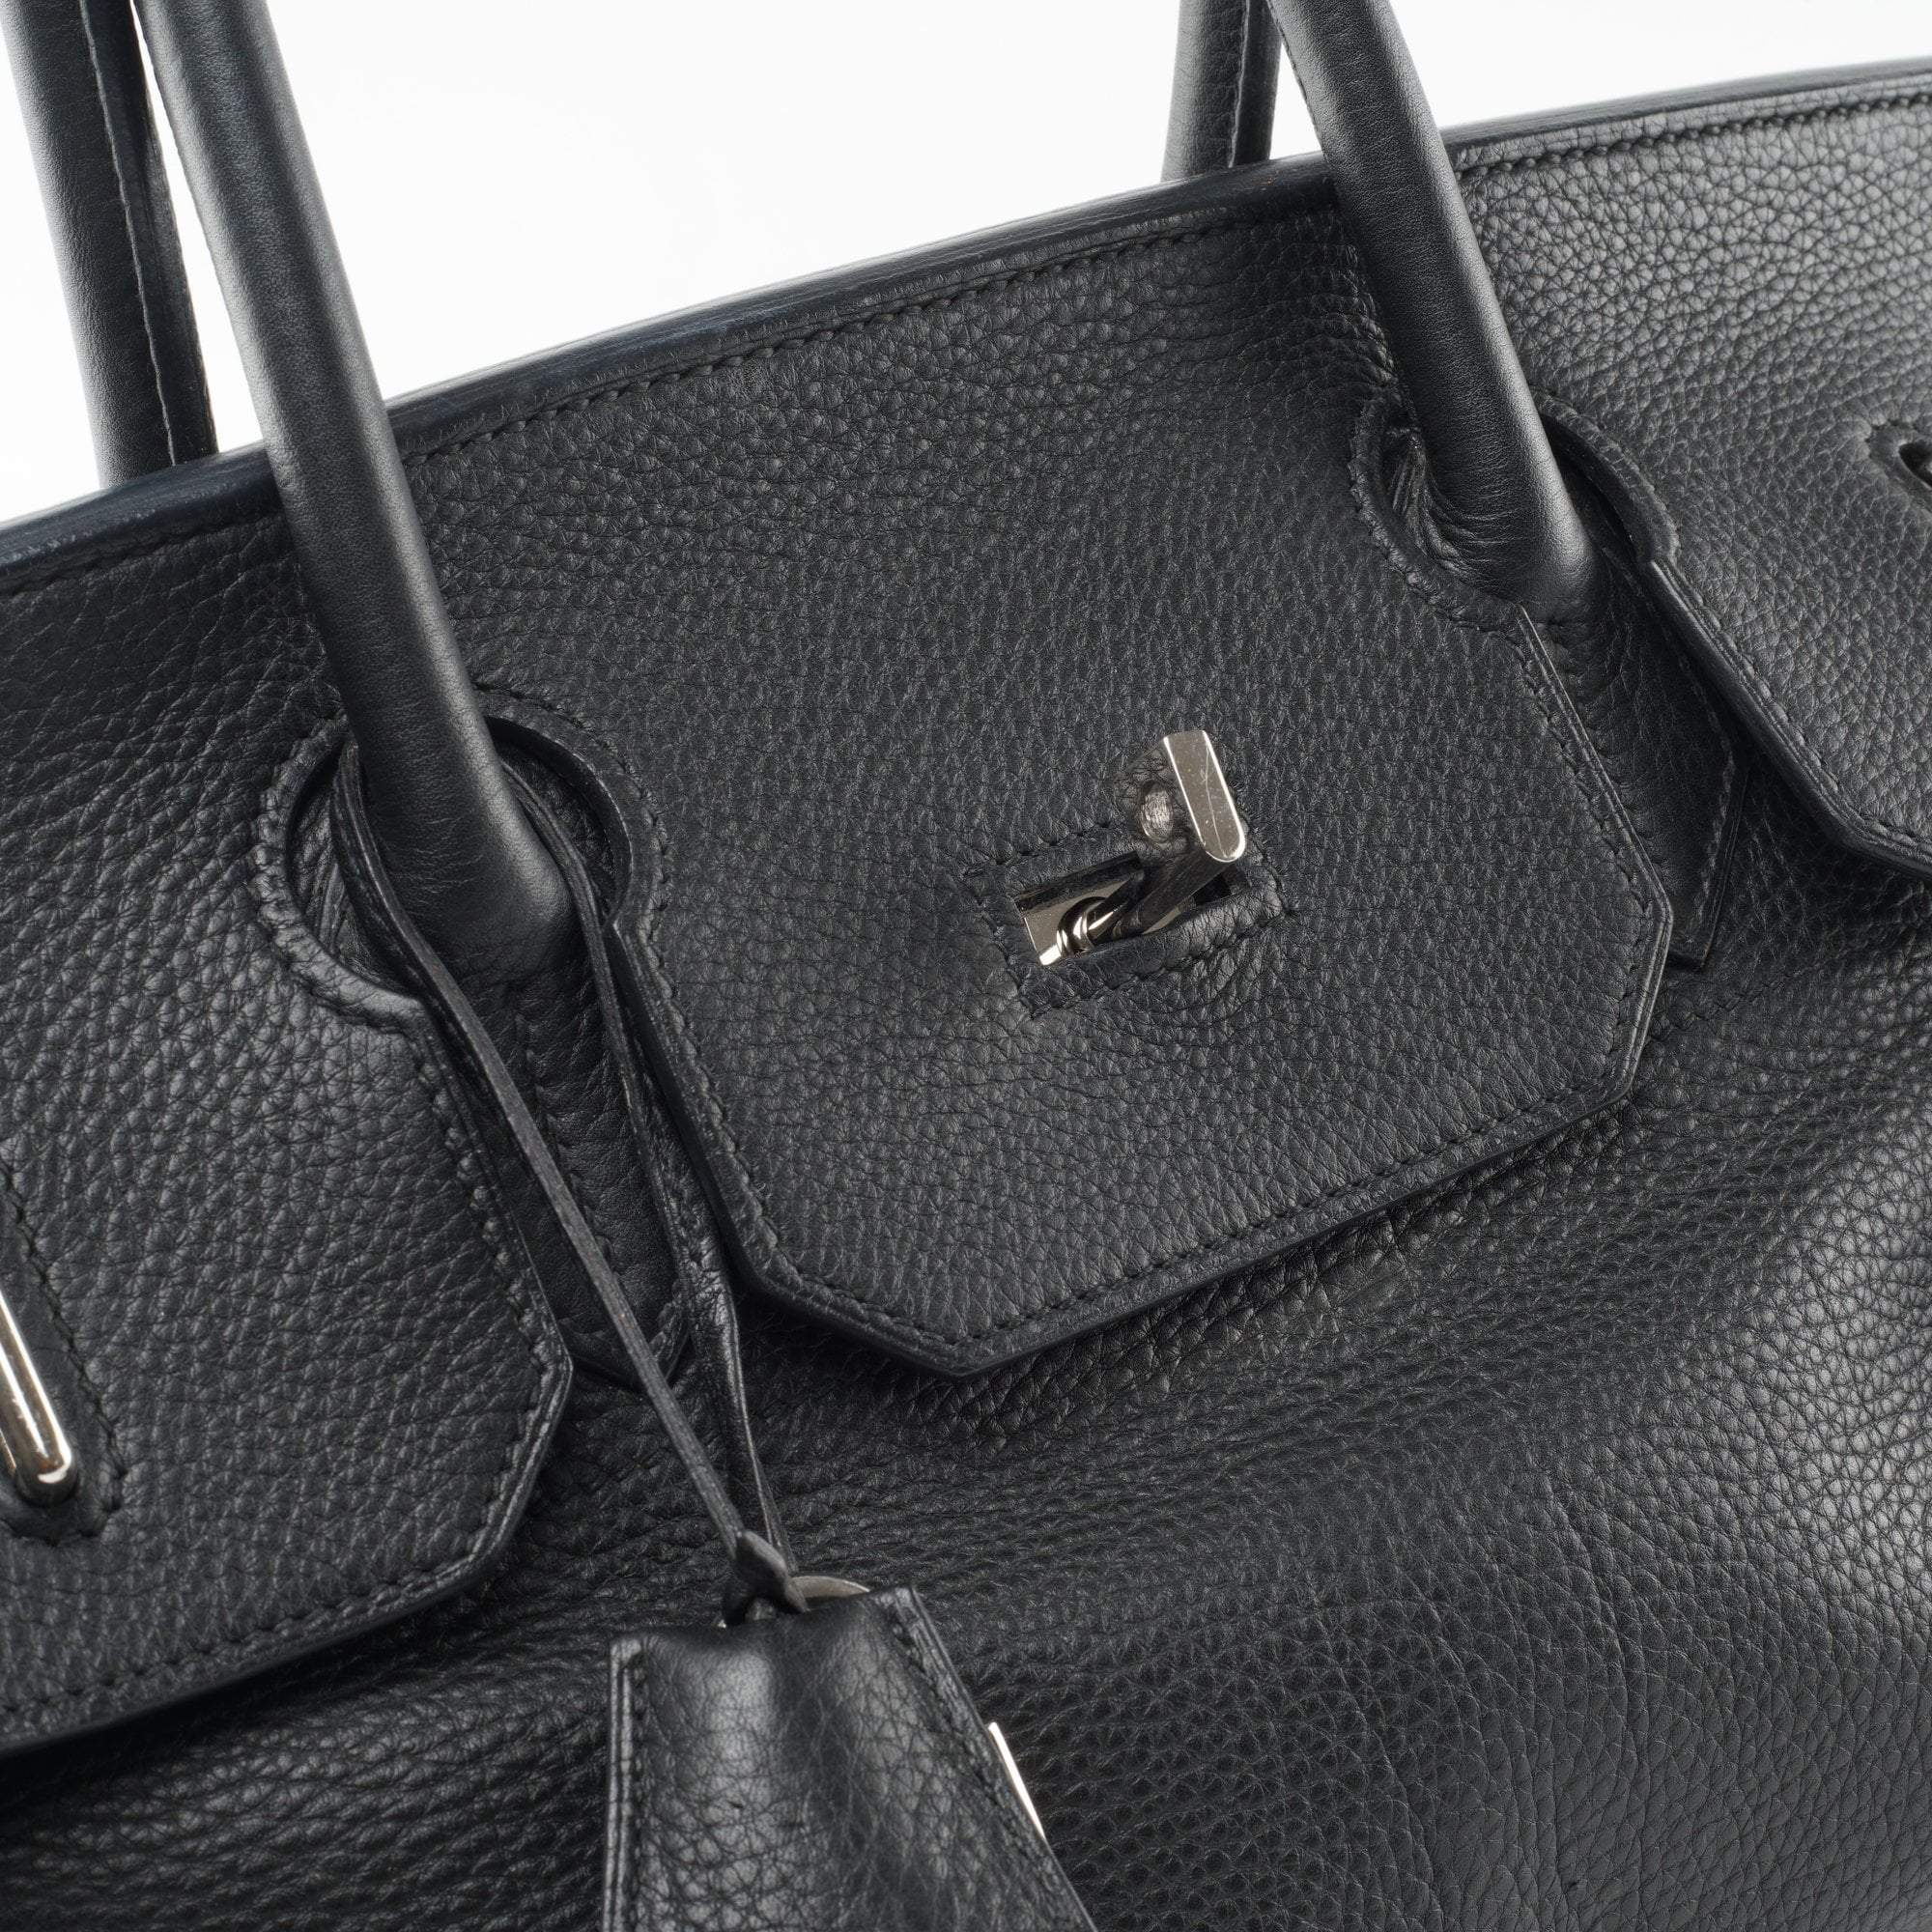 Hermes Black Togo Leather Birkin 42 Bag